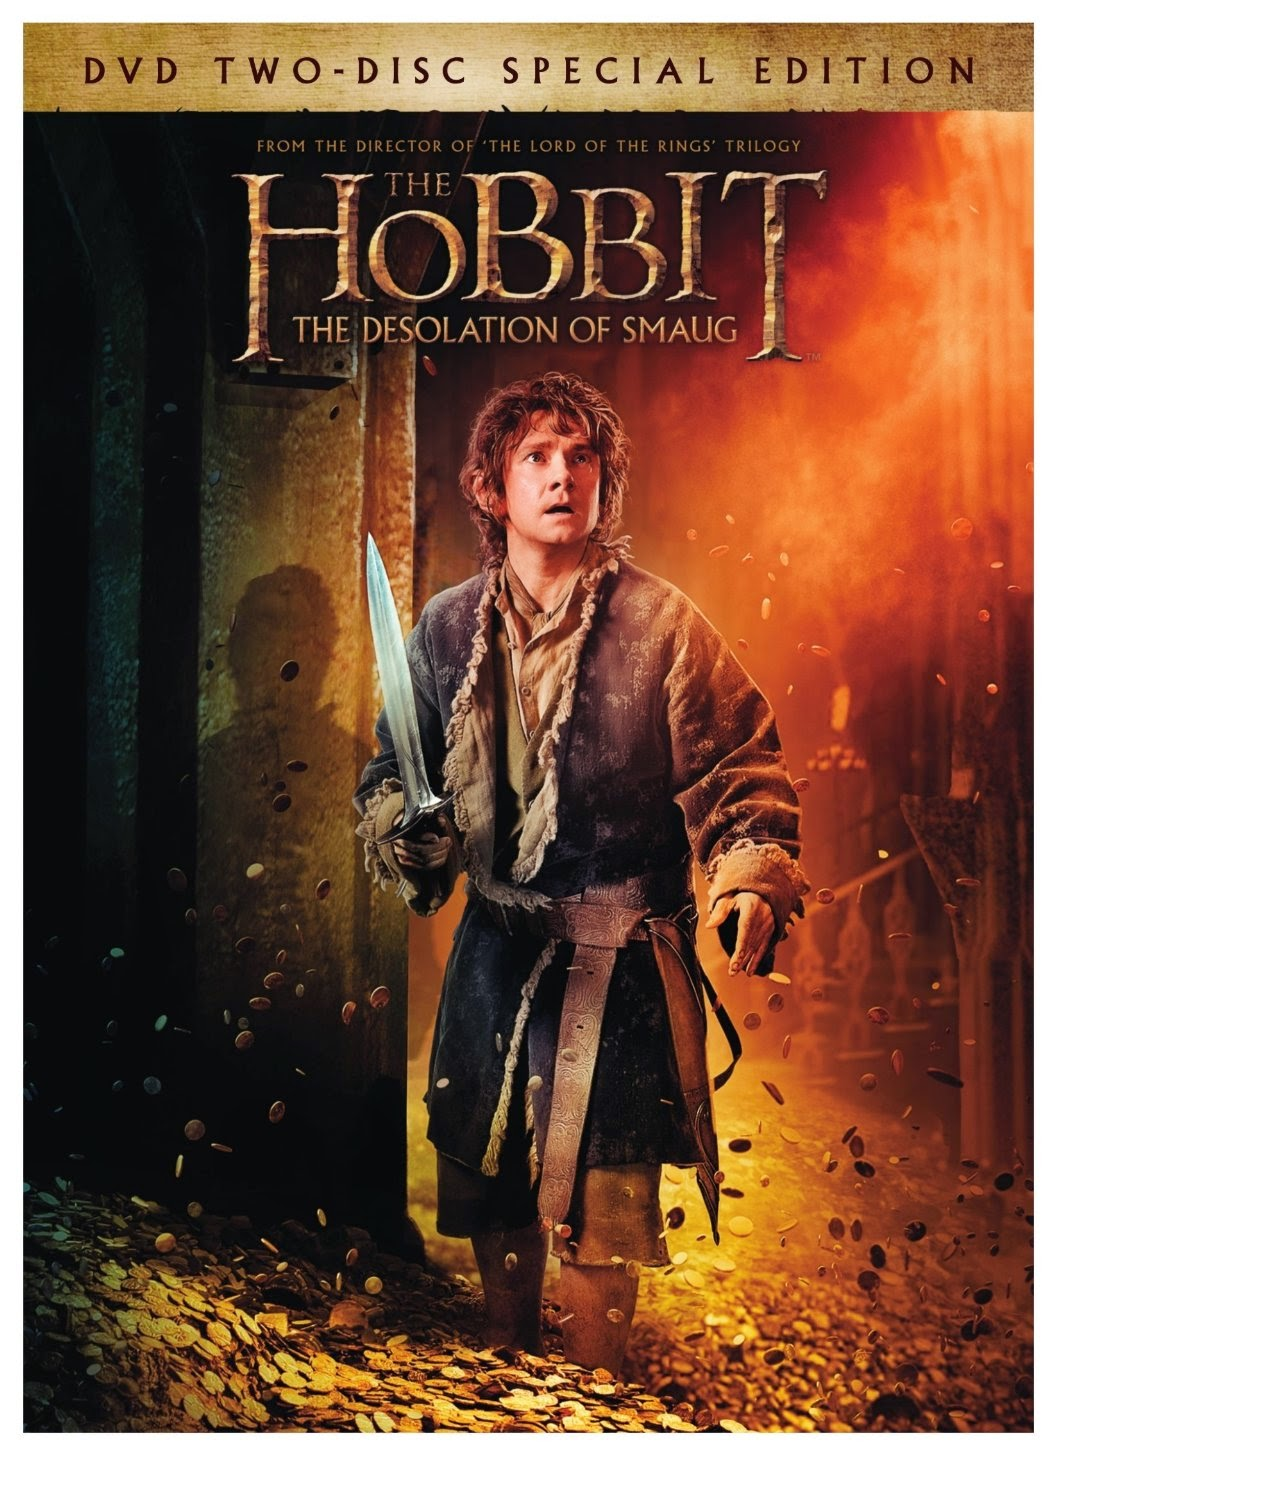 The Hobbit: The Desolation of Samug DVD